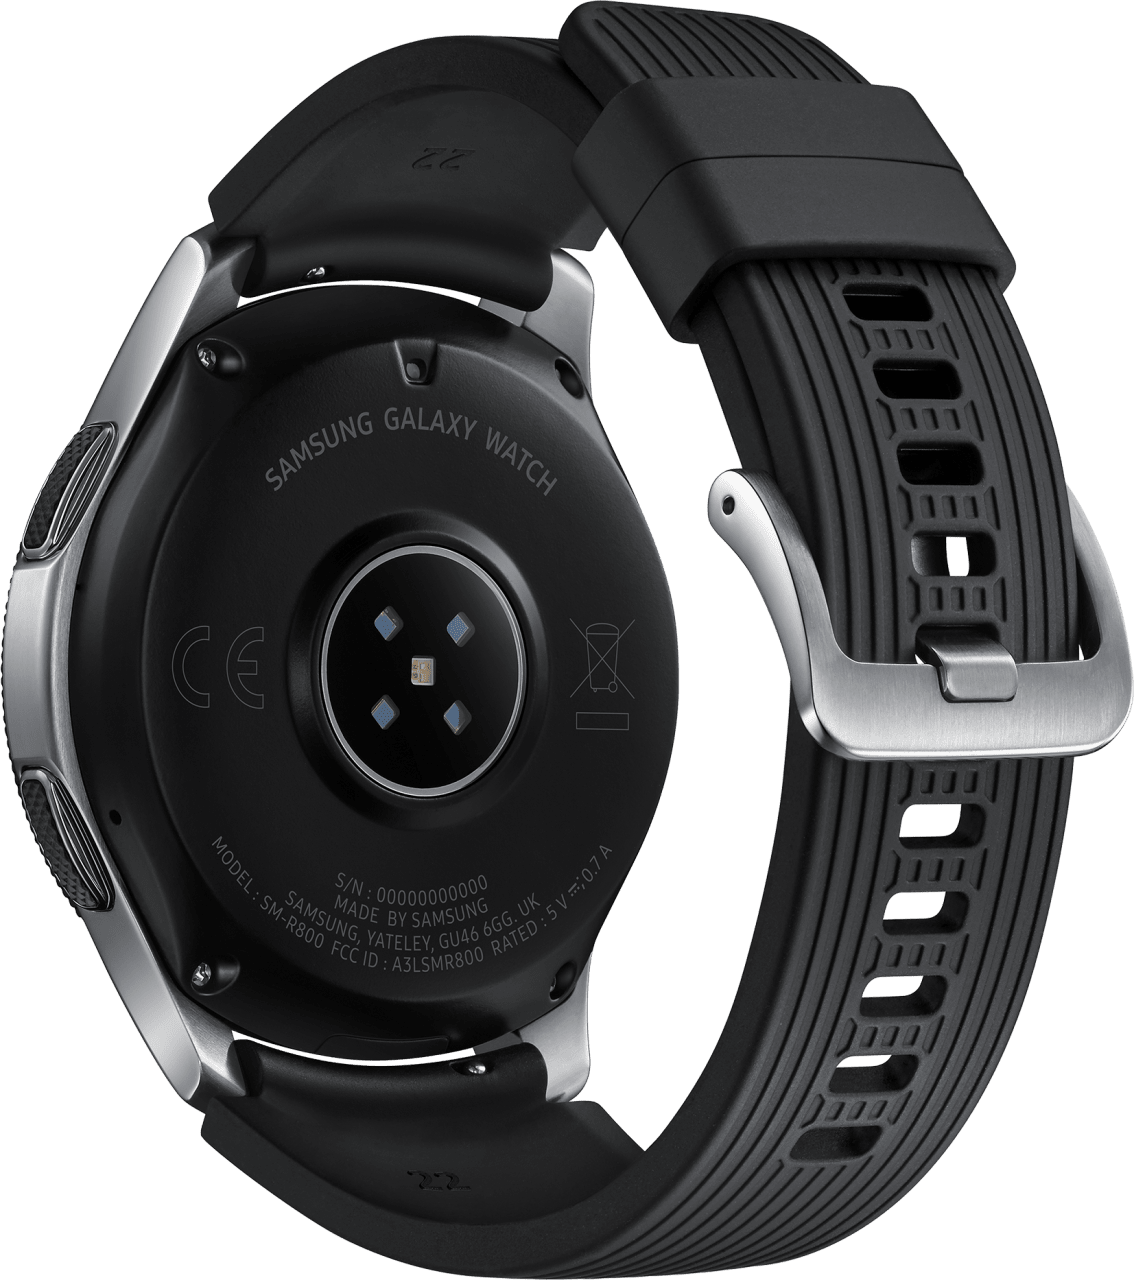 Silber Samsung Galaxy Watch LTE, 46mm.3